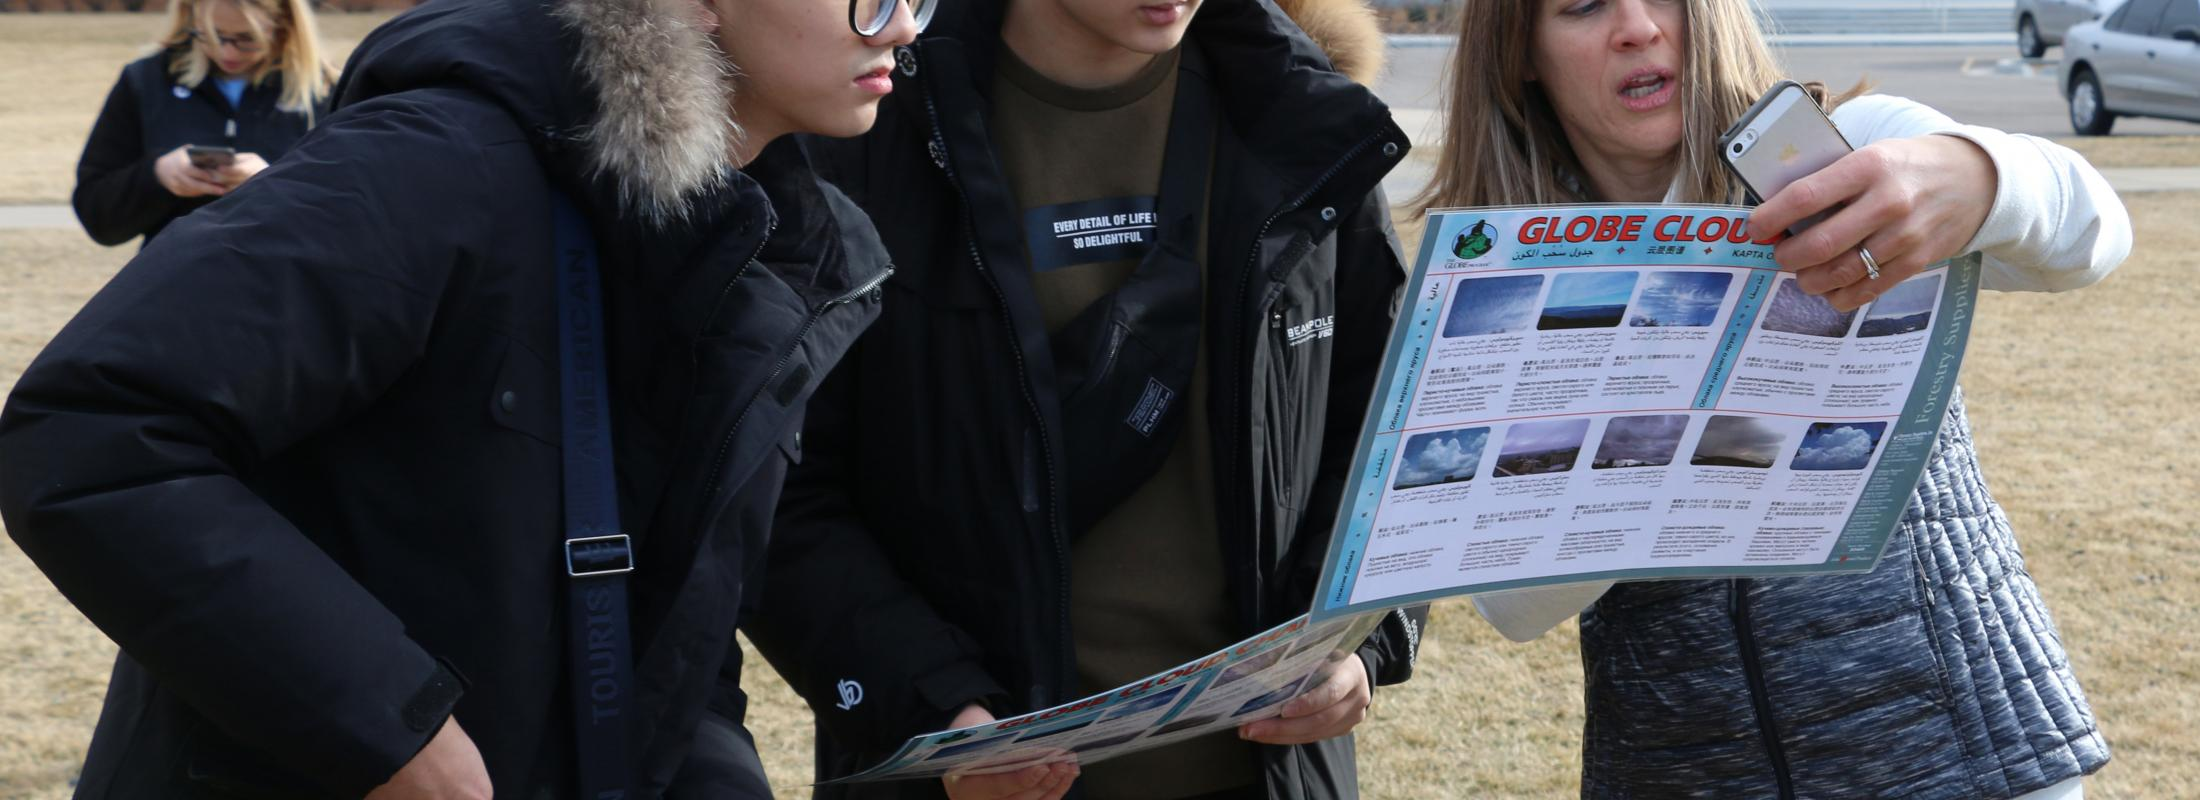 Chinese students look at chart held by an instructor outdoors